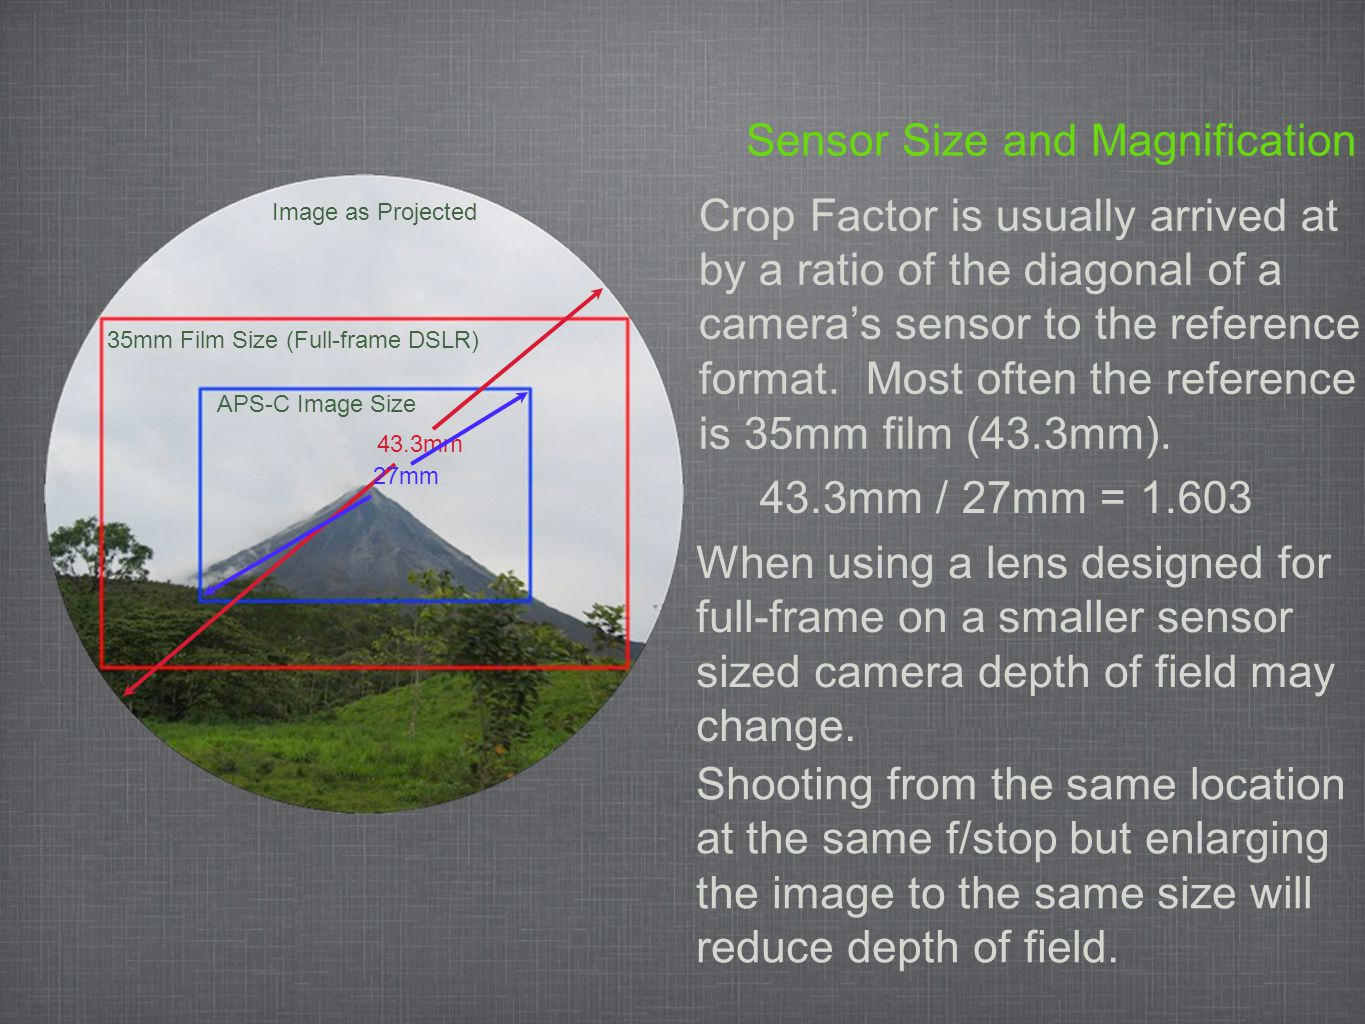 Sensor Size and Magnification (Continued) 35mm Film Size (Full-frame DSLR) Image as Projected APS-C Image Size However, similar framing of the image will provide more depth of field with the smaller sensor.